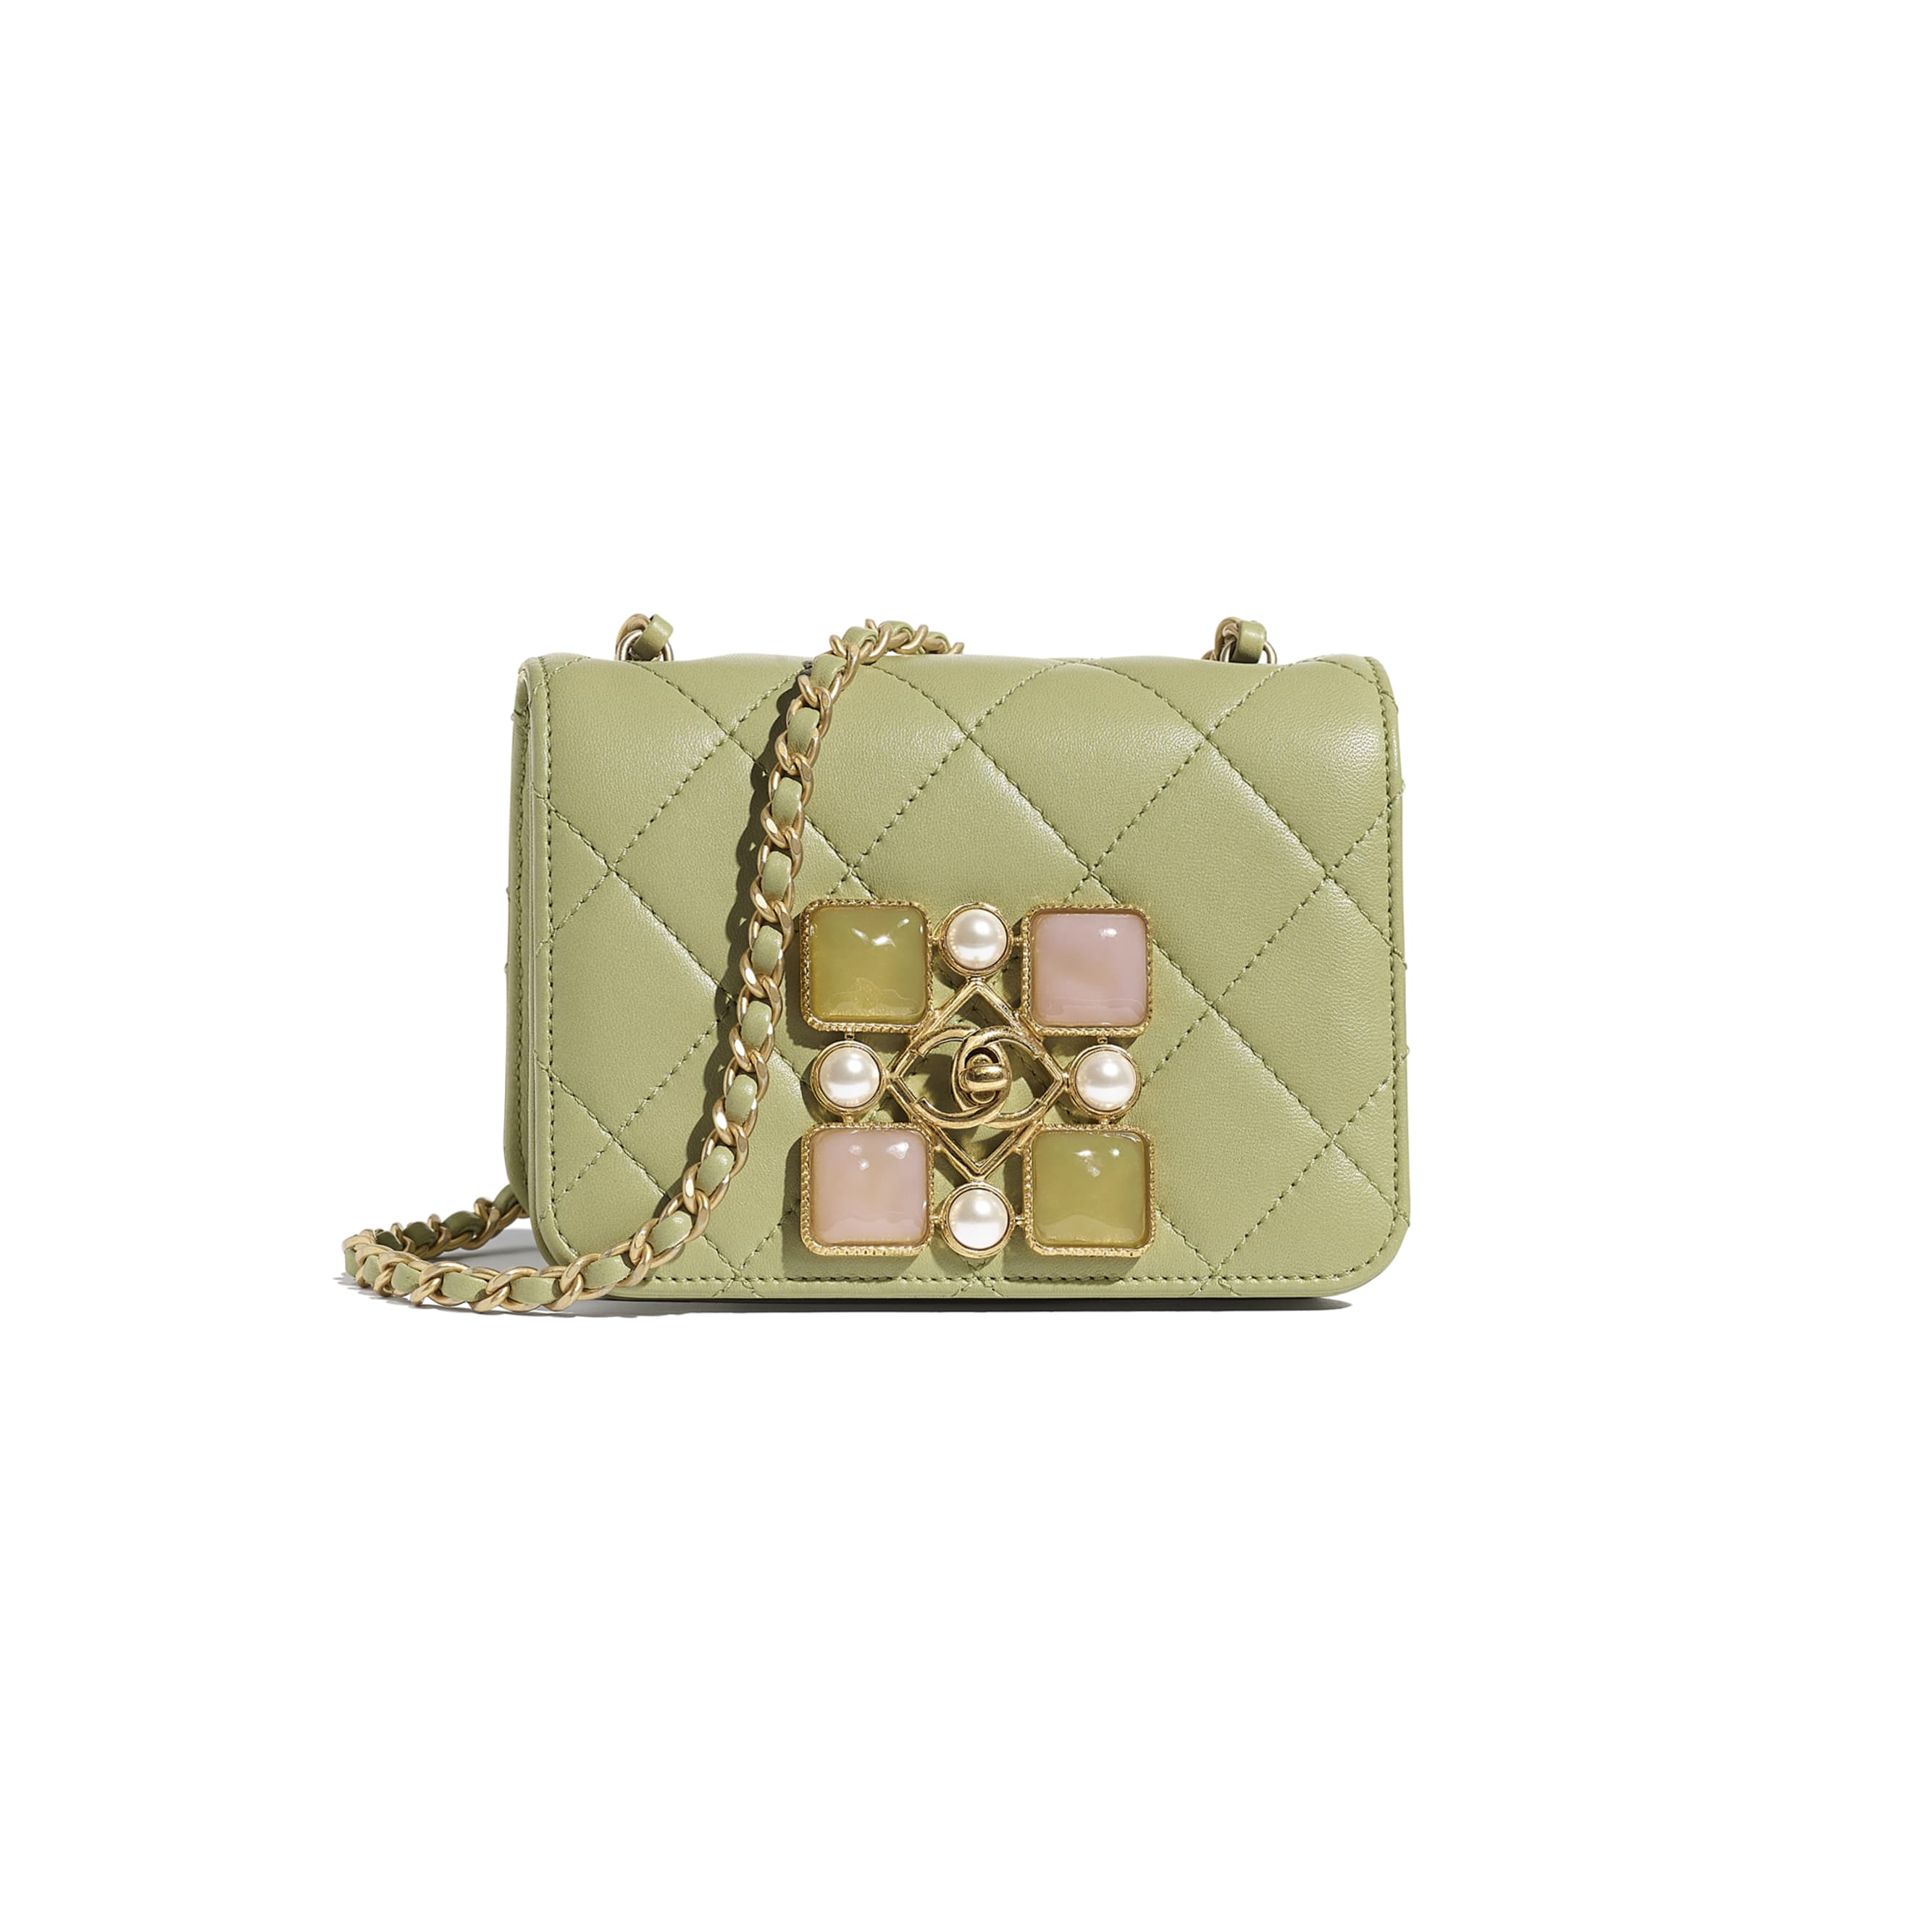 Small Flap Bag - Green - Calfskin, Crystal Pearls, Resin & Gold-Tone Metal - CHANEL - Default view - see standard sized version